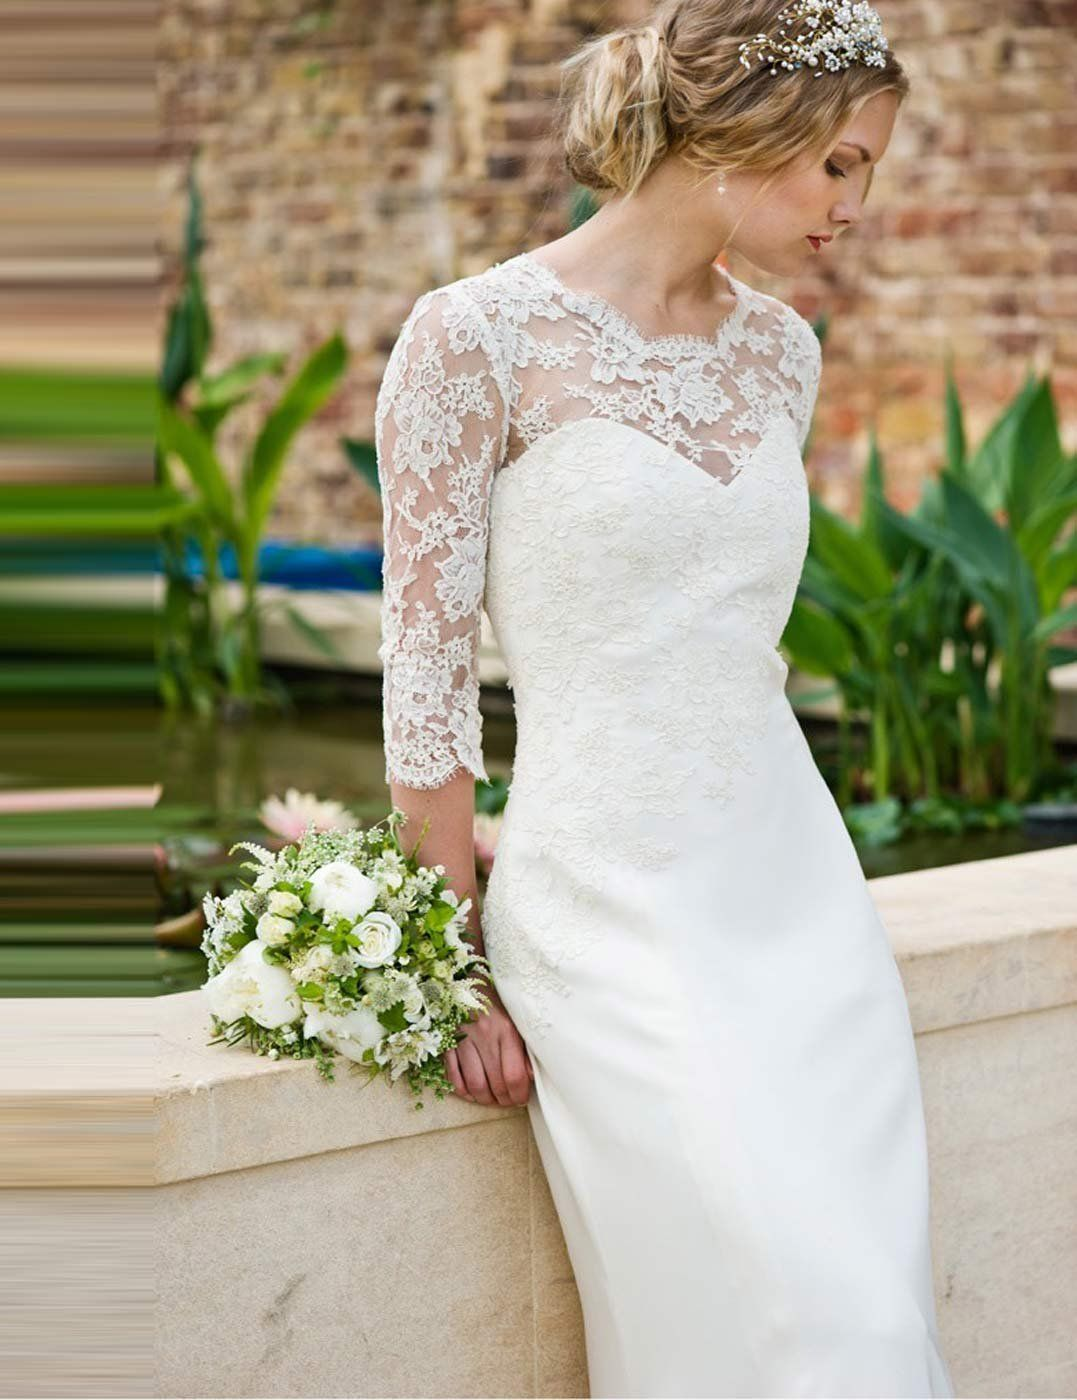 Bridal sample sales guide gowns wedding and wedding planning